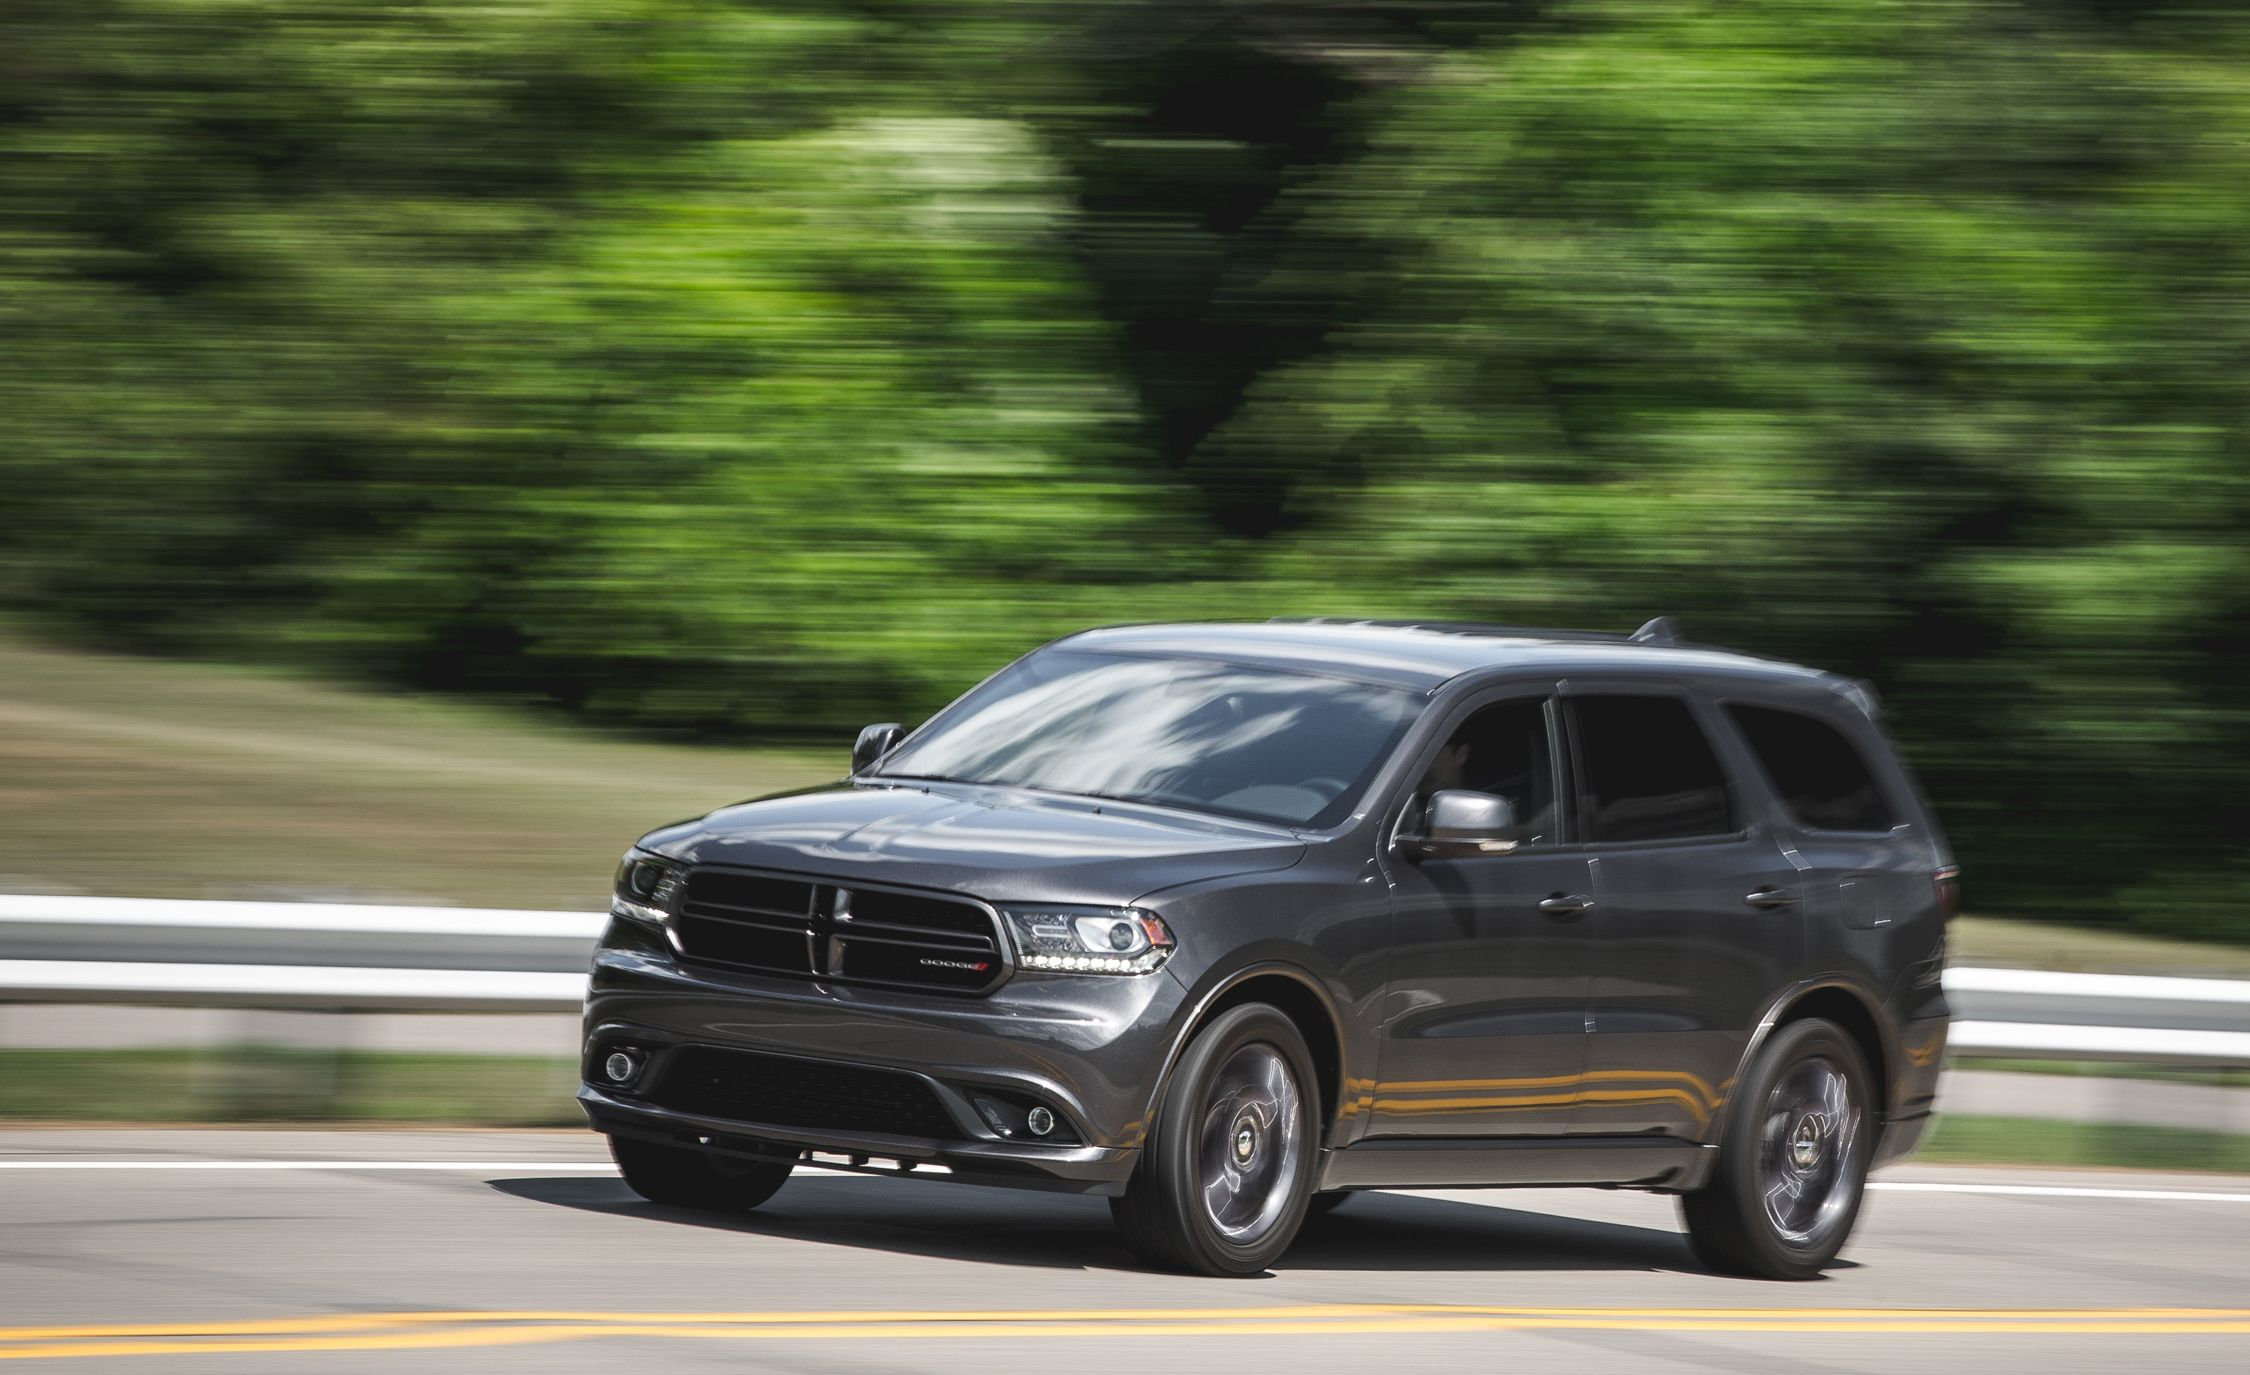 dodge r t durango by 2016 dodge durango pictures photo gallery car and driver